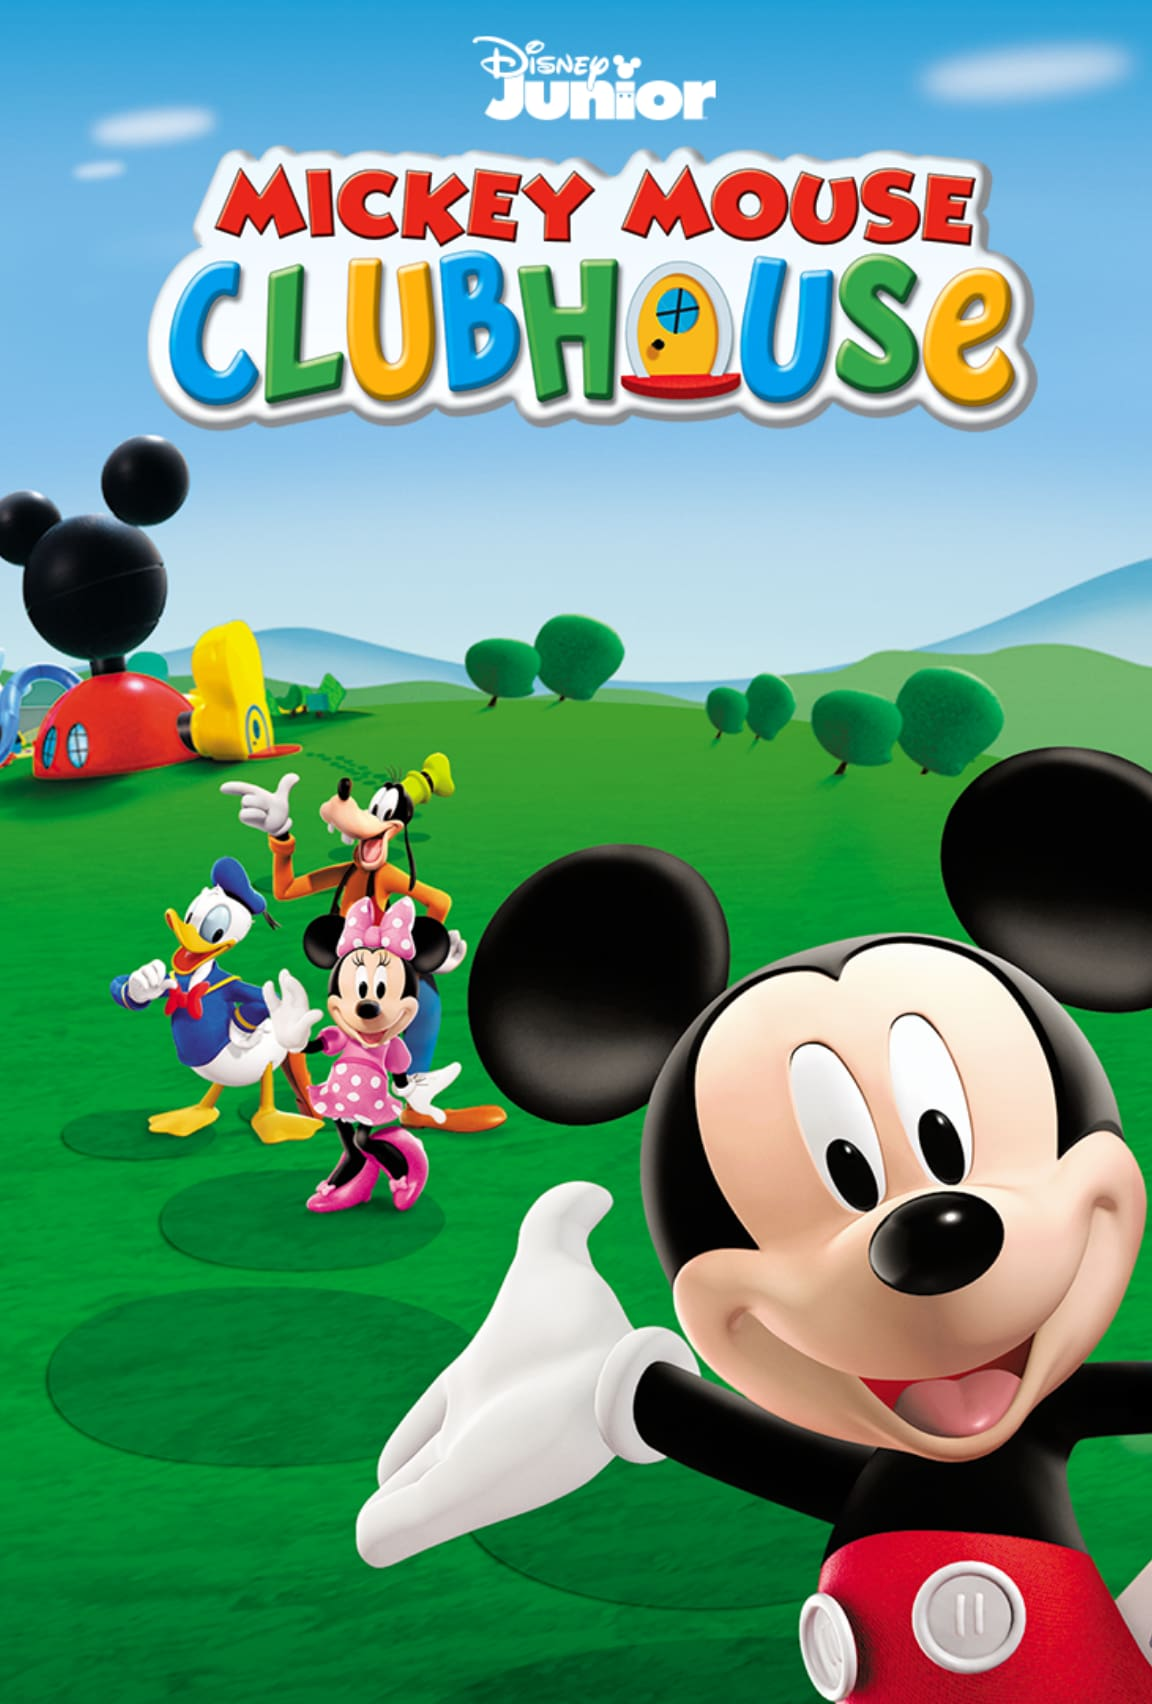 Mickey Mouse Clubhouse (2006)